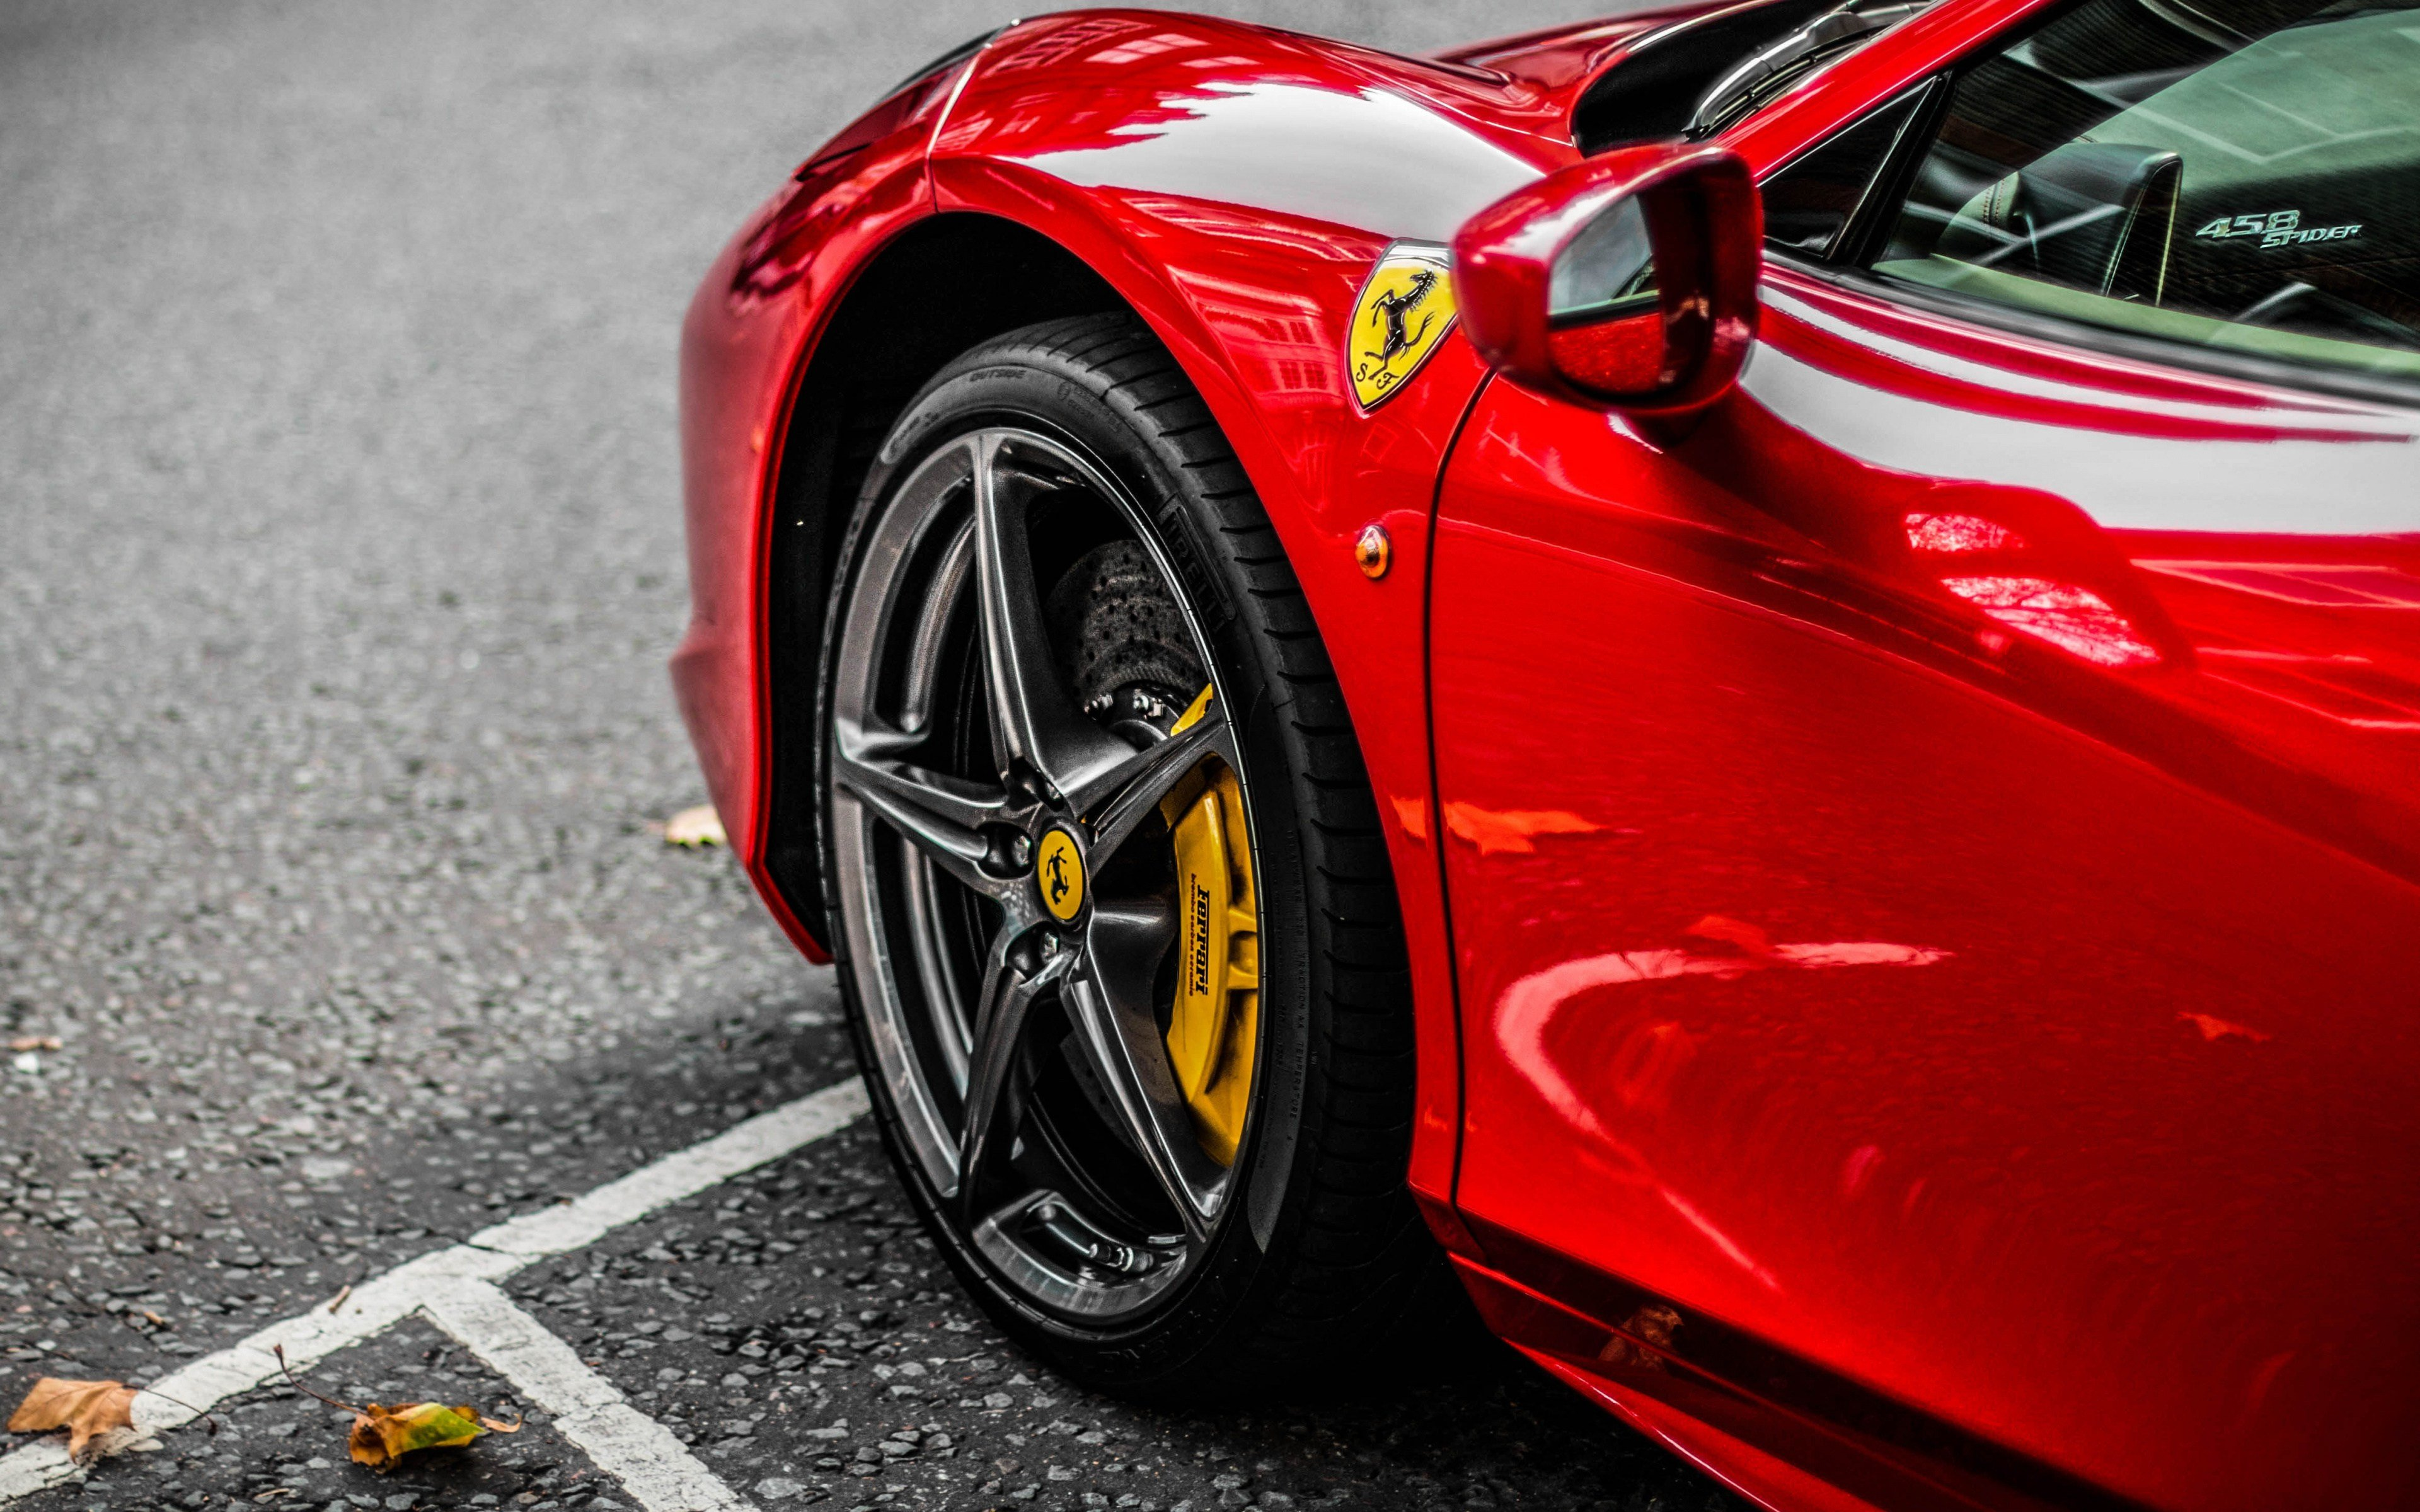 New Download 3840X2400 Wallpaper Red Supercar Ferrari Wheel On This Month